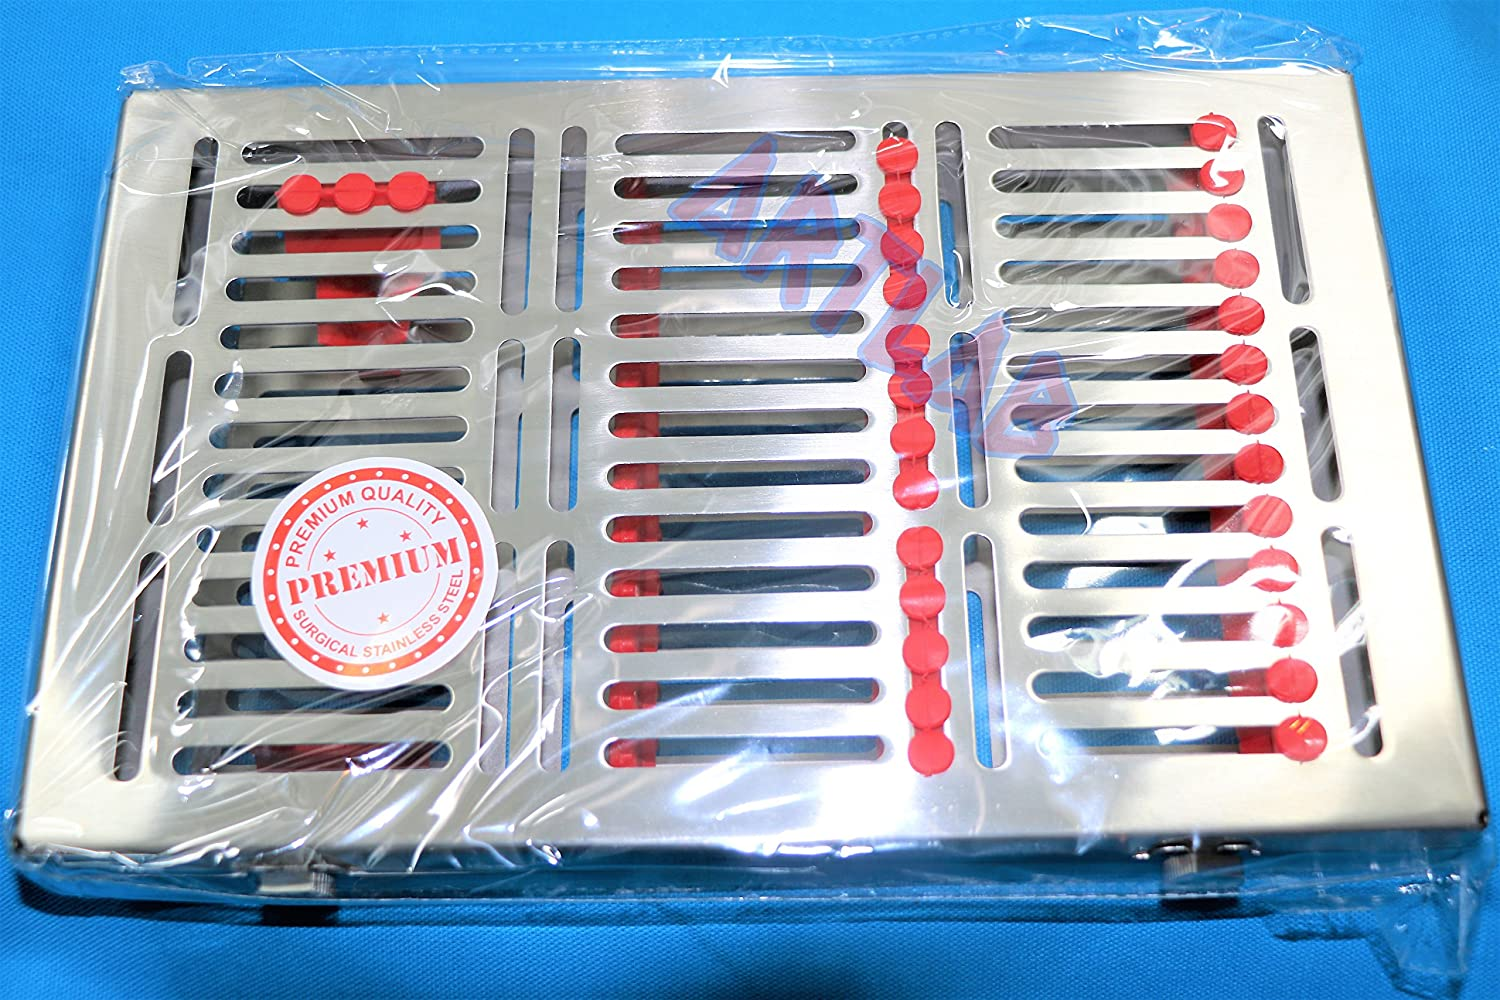 German Autoclave Sterilization Cassette Rack Branded goods with shop Box Butto Tray